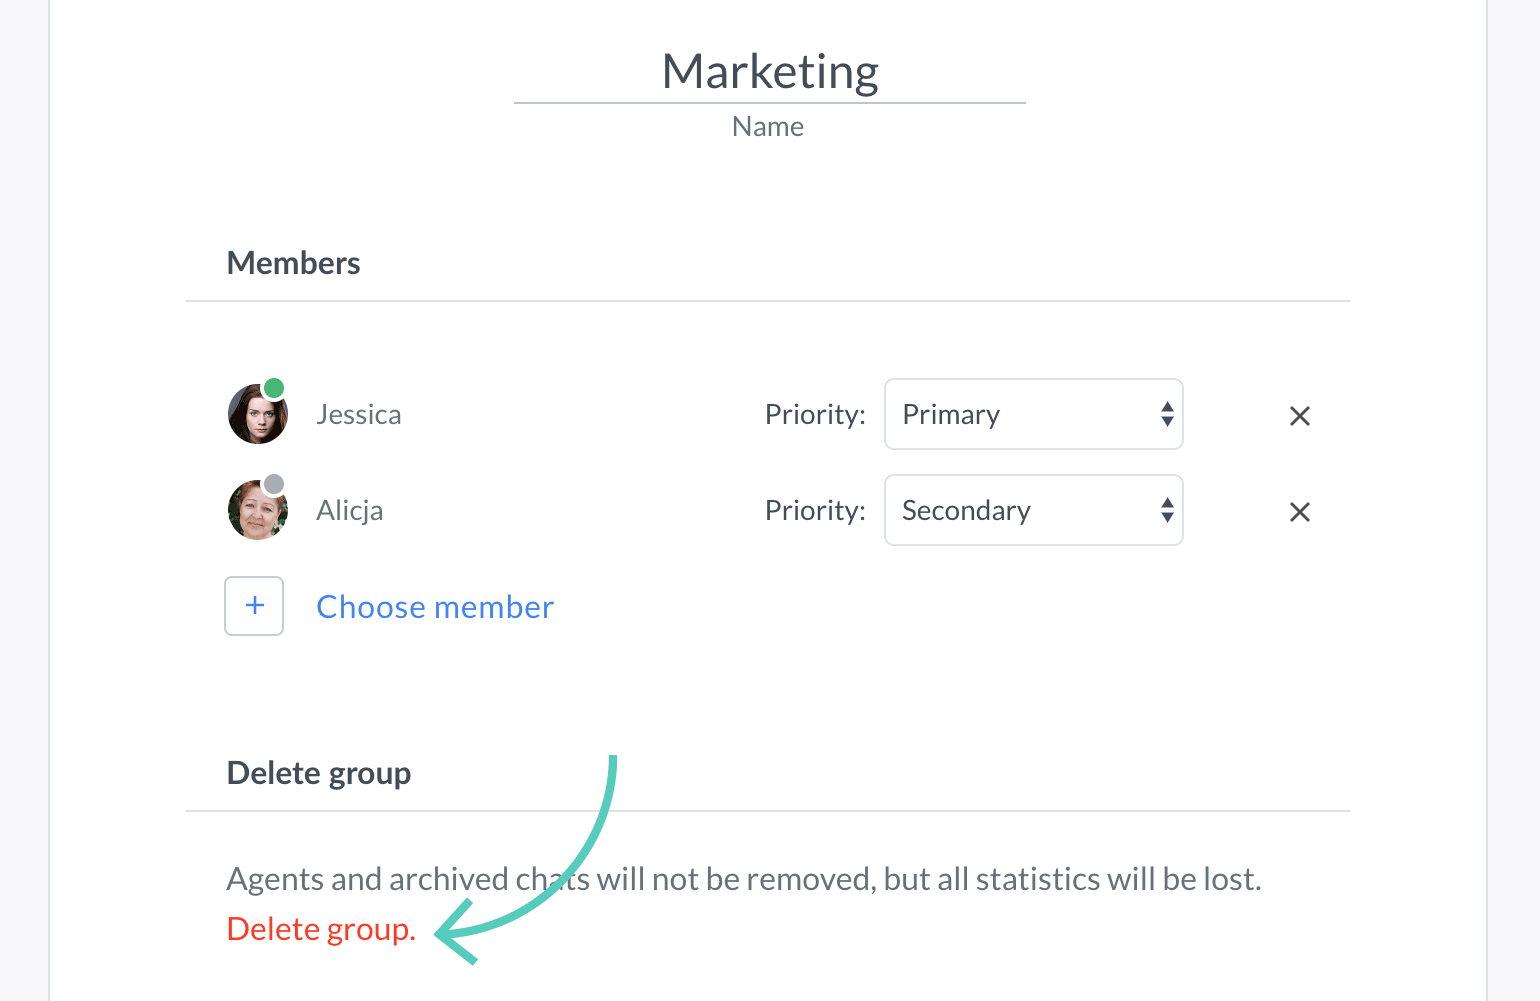 Delete group in group editing